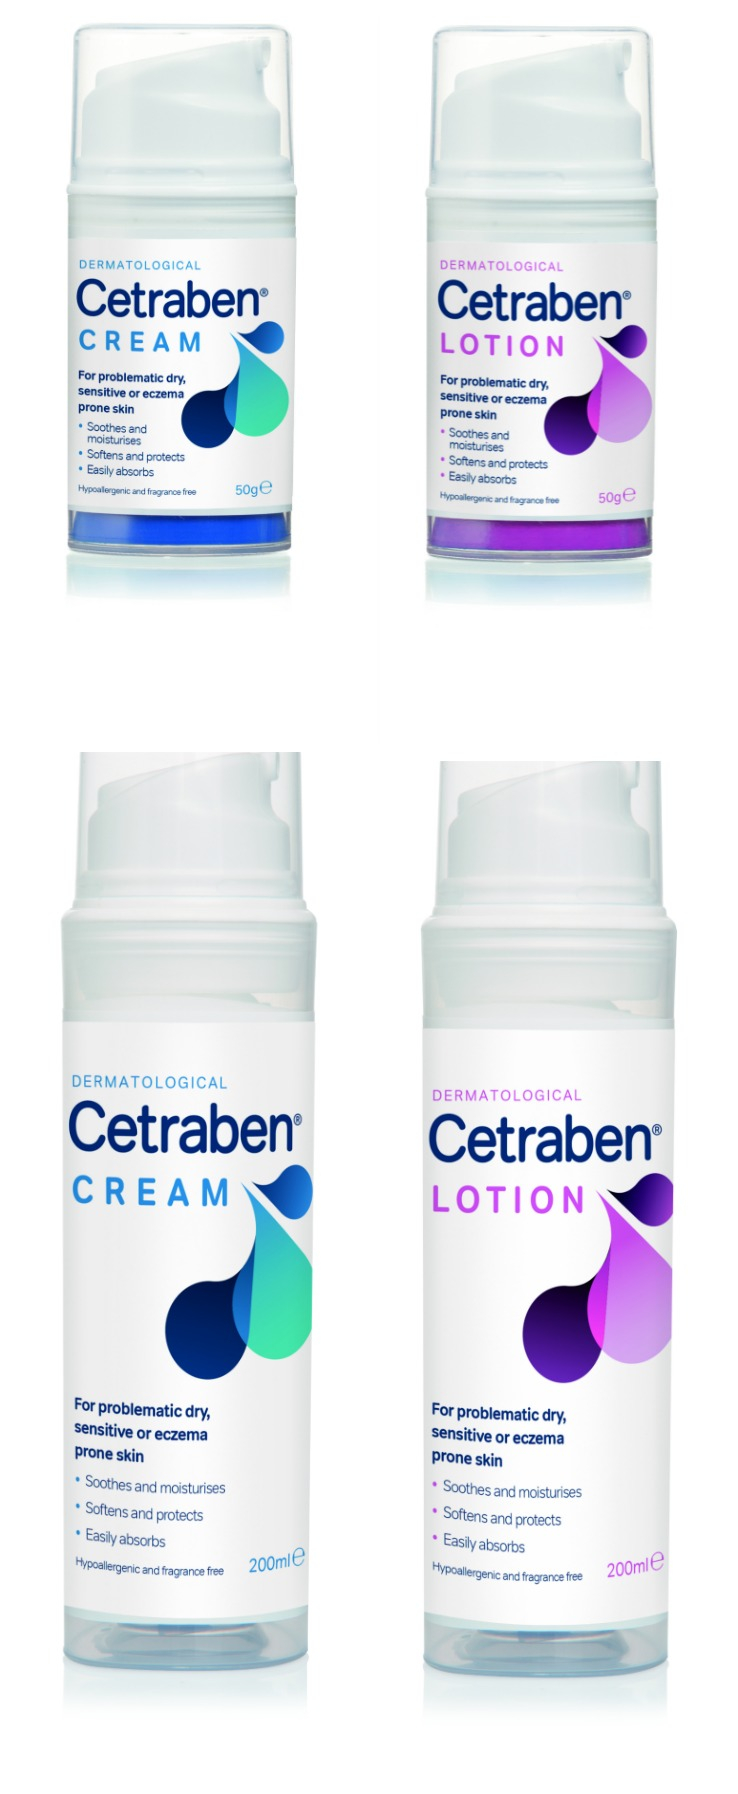 Cetraben cream Collage